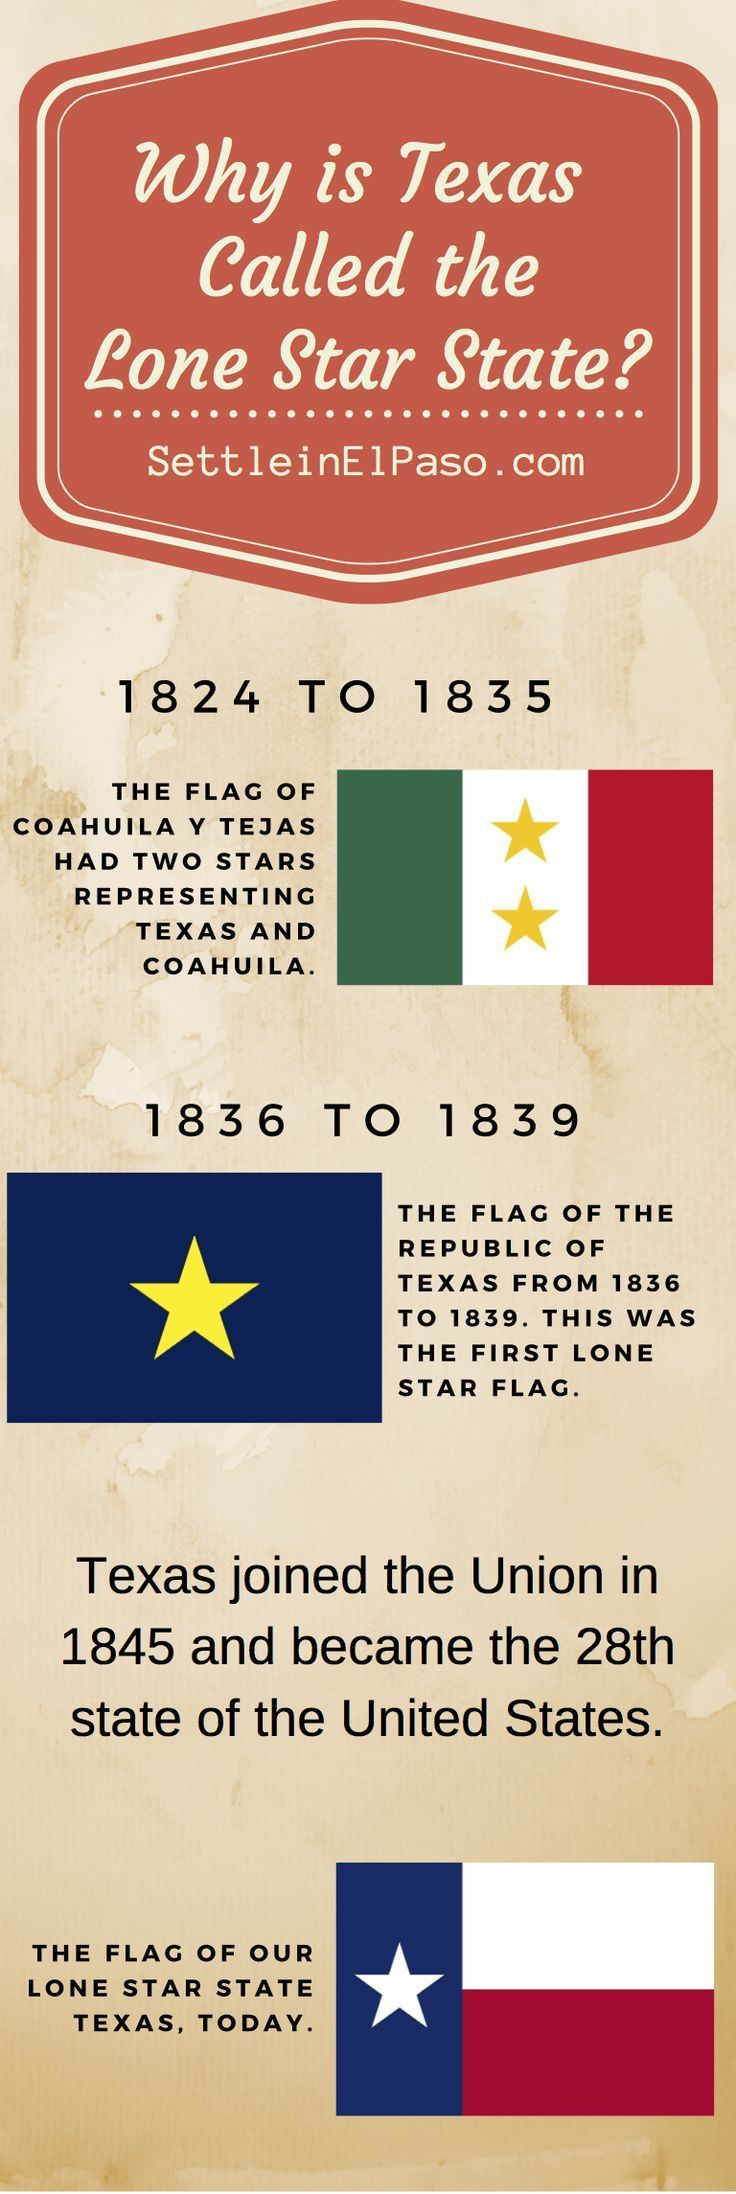 The Lone MountainStar Of El Paso El Paso Lone Star State And Texas - Why is texas called the lone star state